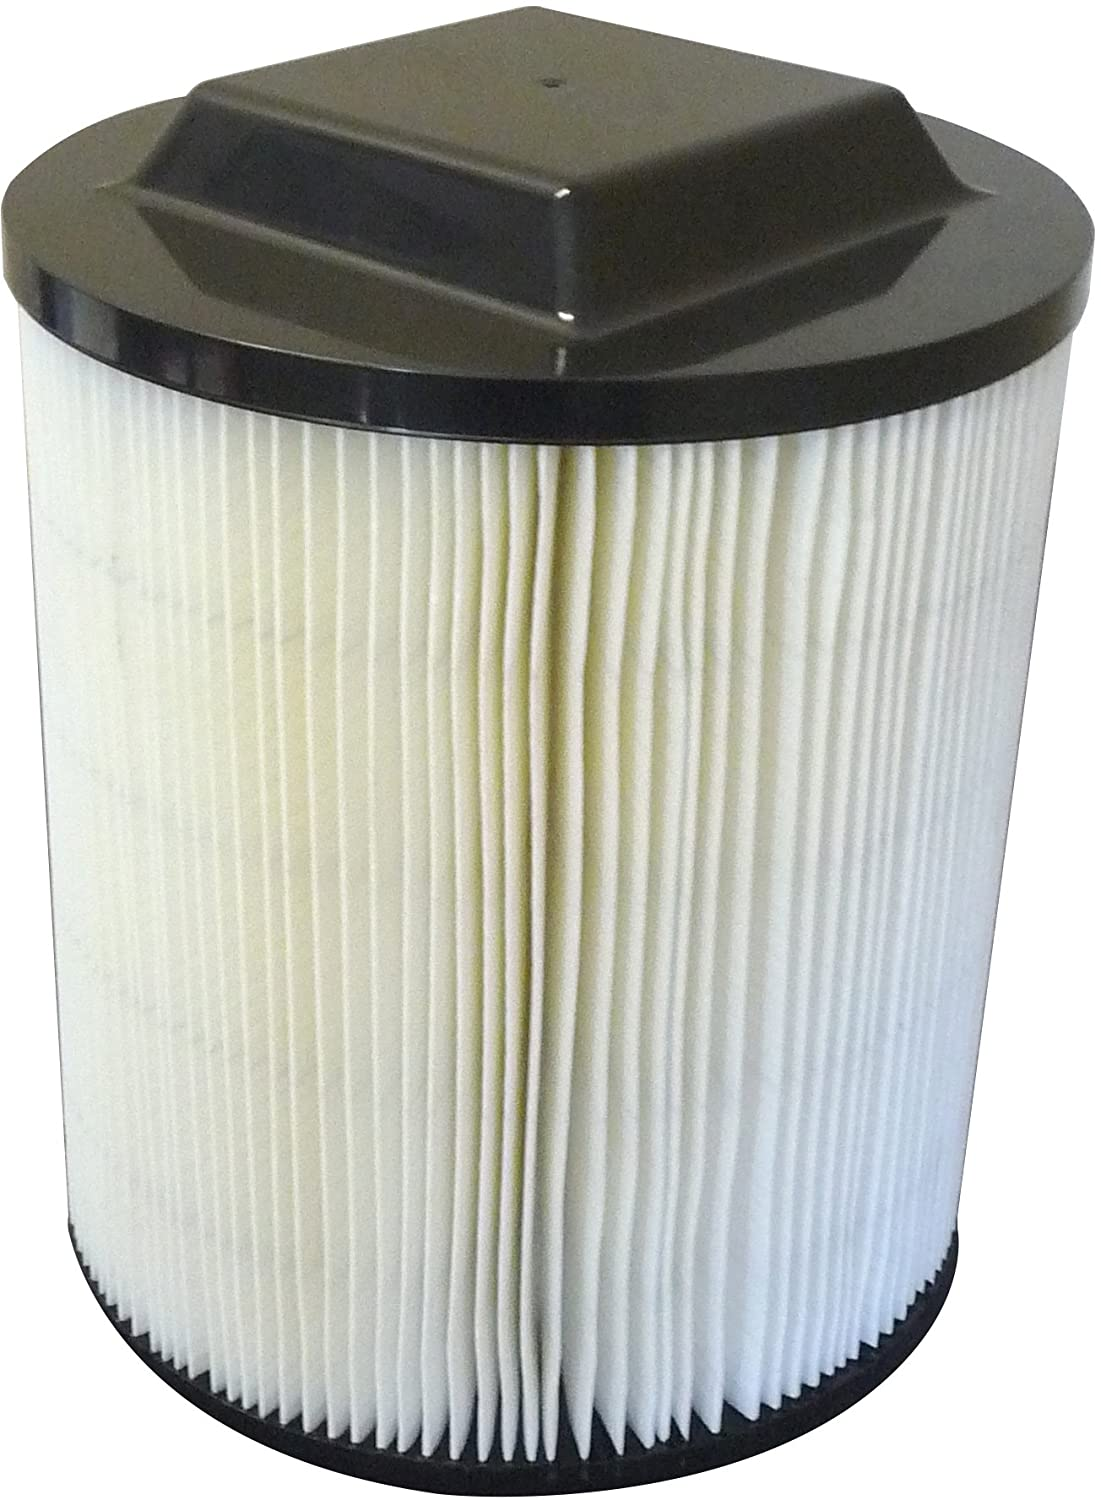 Green Klean GK-R5000-8 3 Layer Rigid Micro Pleated Replacement Cartridge Wet/Dry Filter (Pack of 8) by Green Klean B01AI0MU54